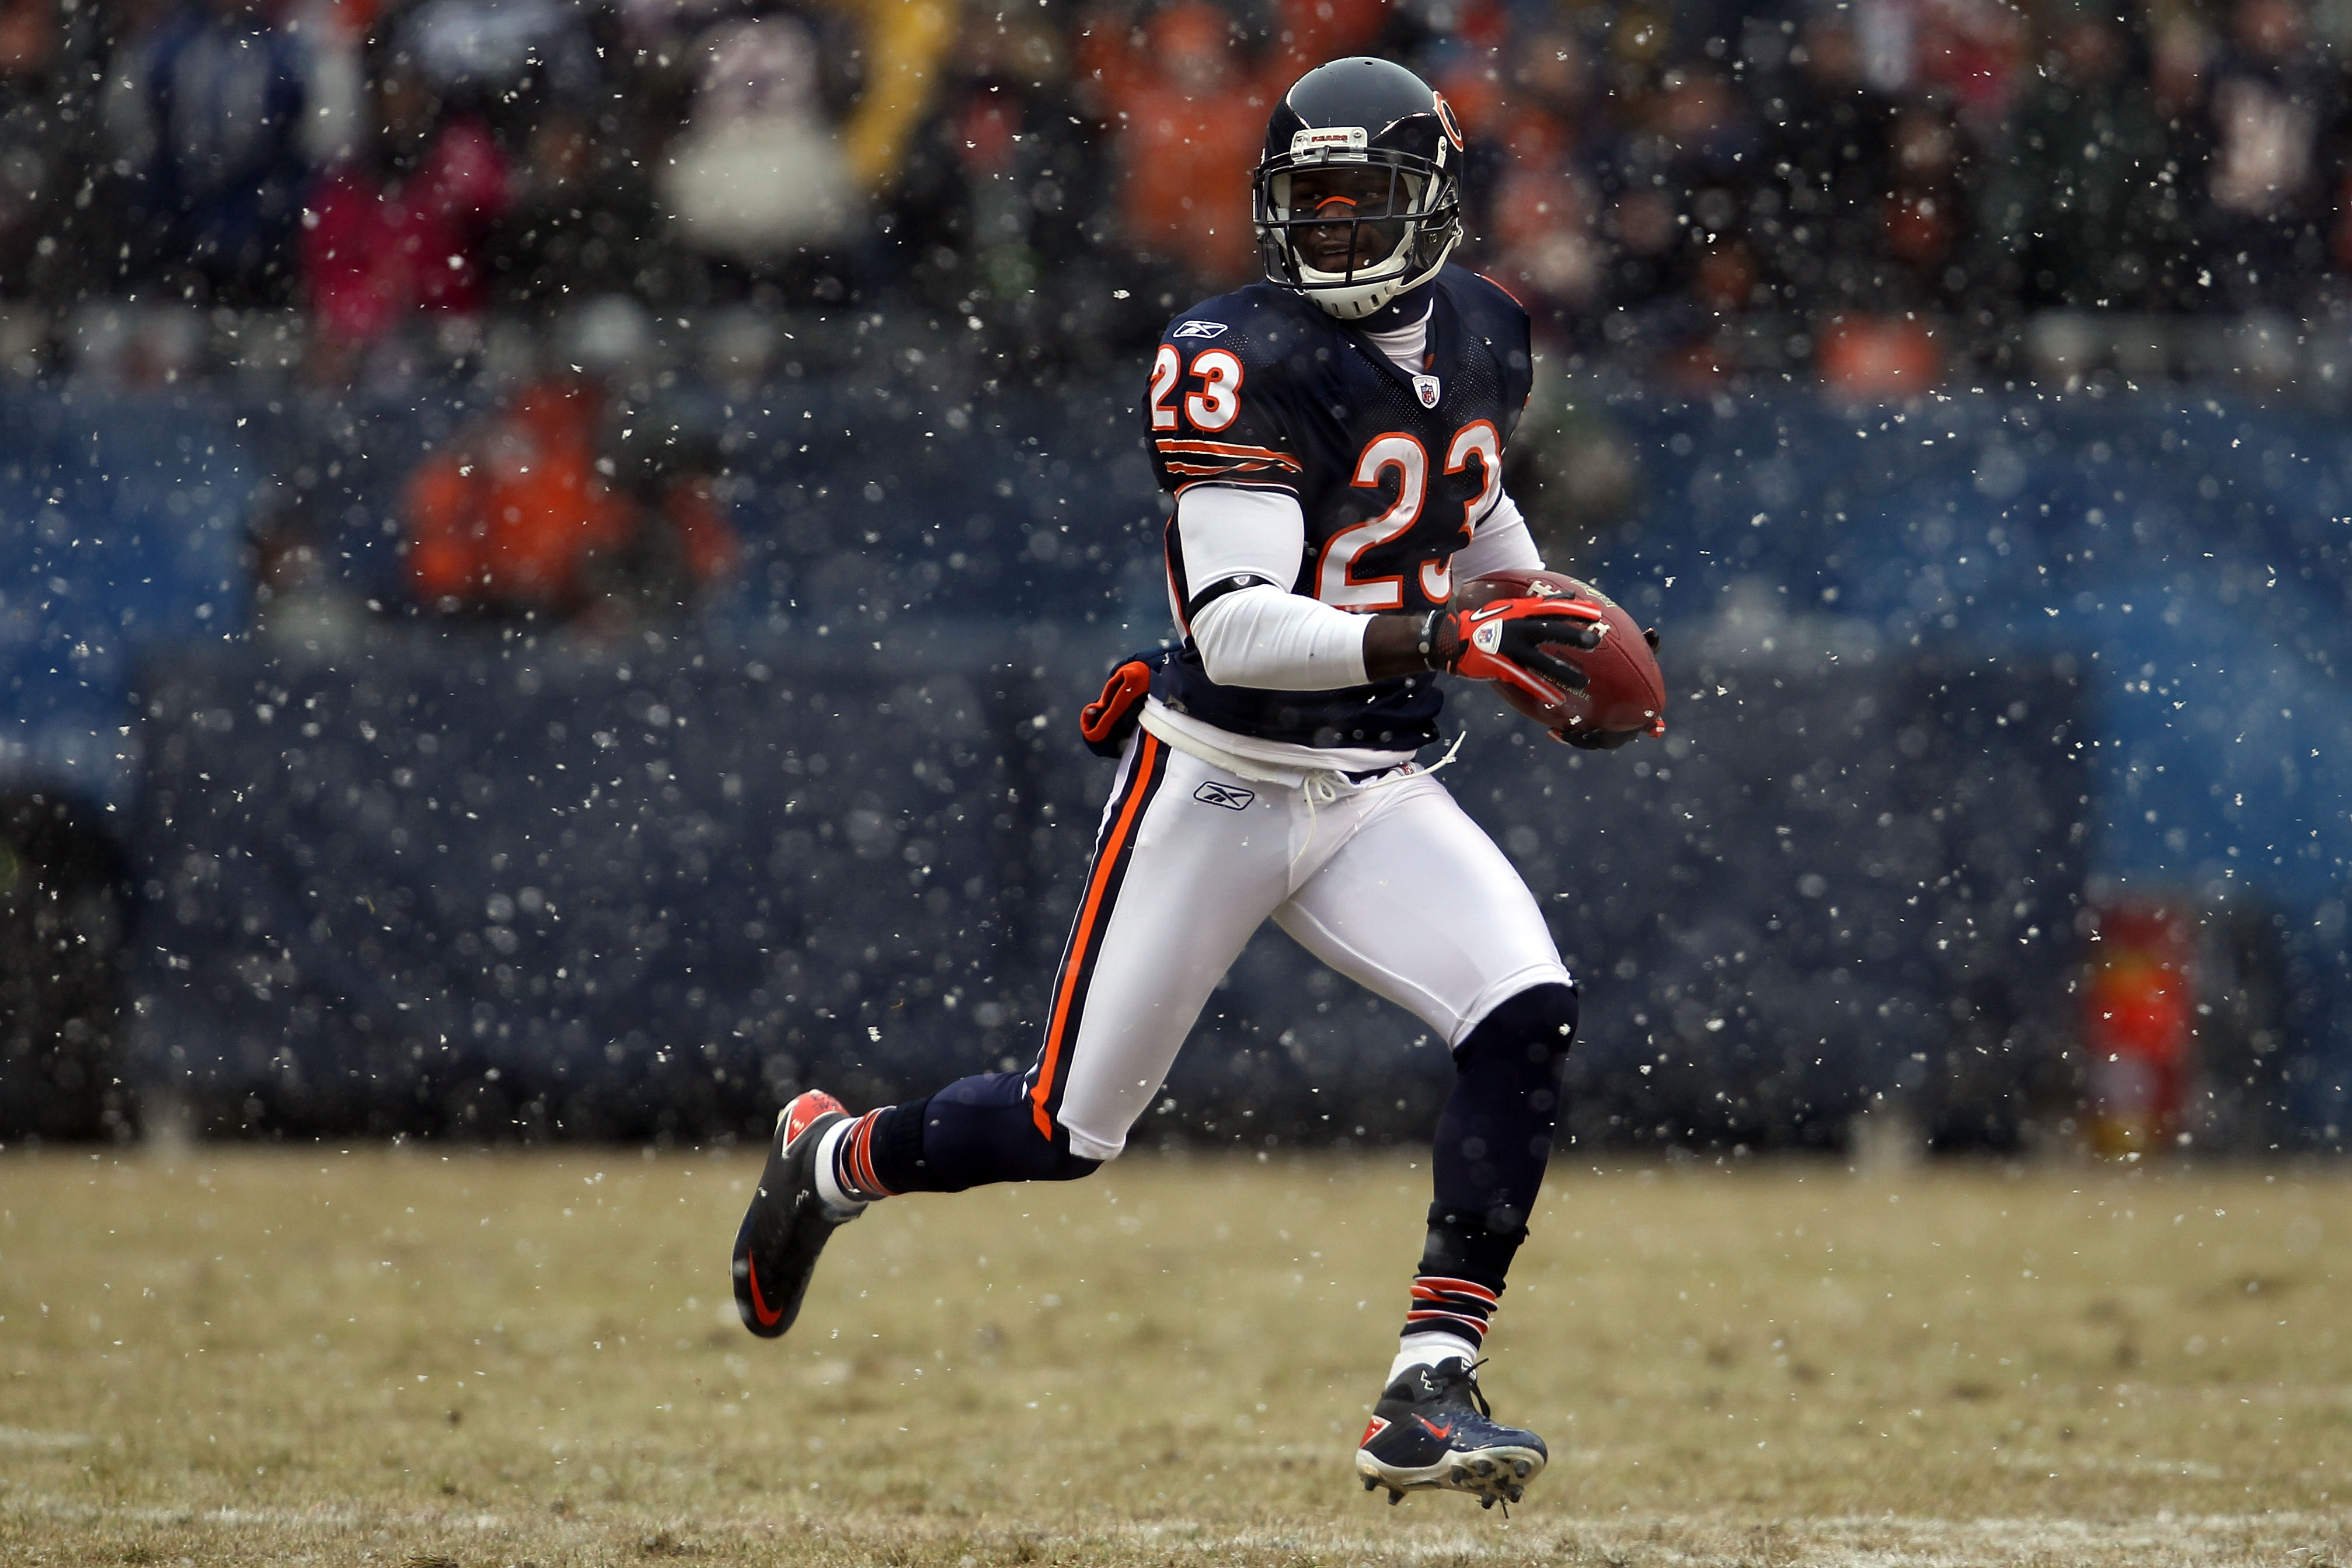 CHICAGO, IL - JANUARY 16:  Kick returner Devin Hester #23 of the Chicago Bears returns a punt in the first half against the Seattle Seahawks in the 2011 NFC divisional playoff game at Soldier Field on January 16, 2011 in Chicago, Illinois.  (Photo by Jona